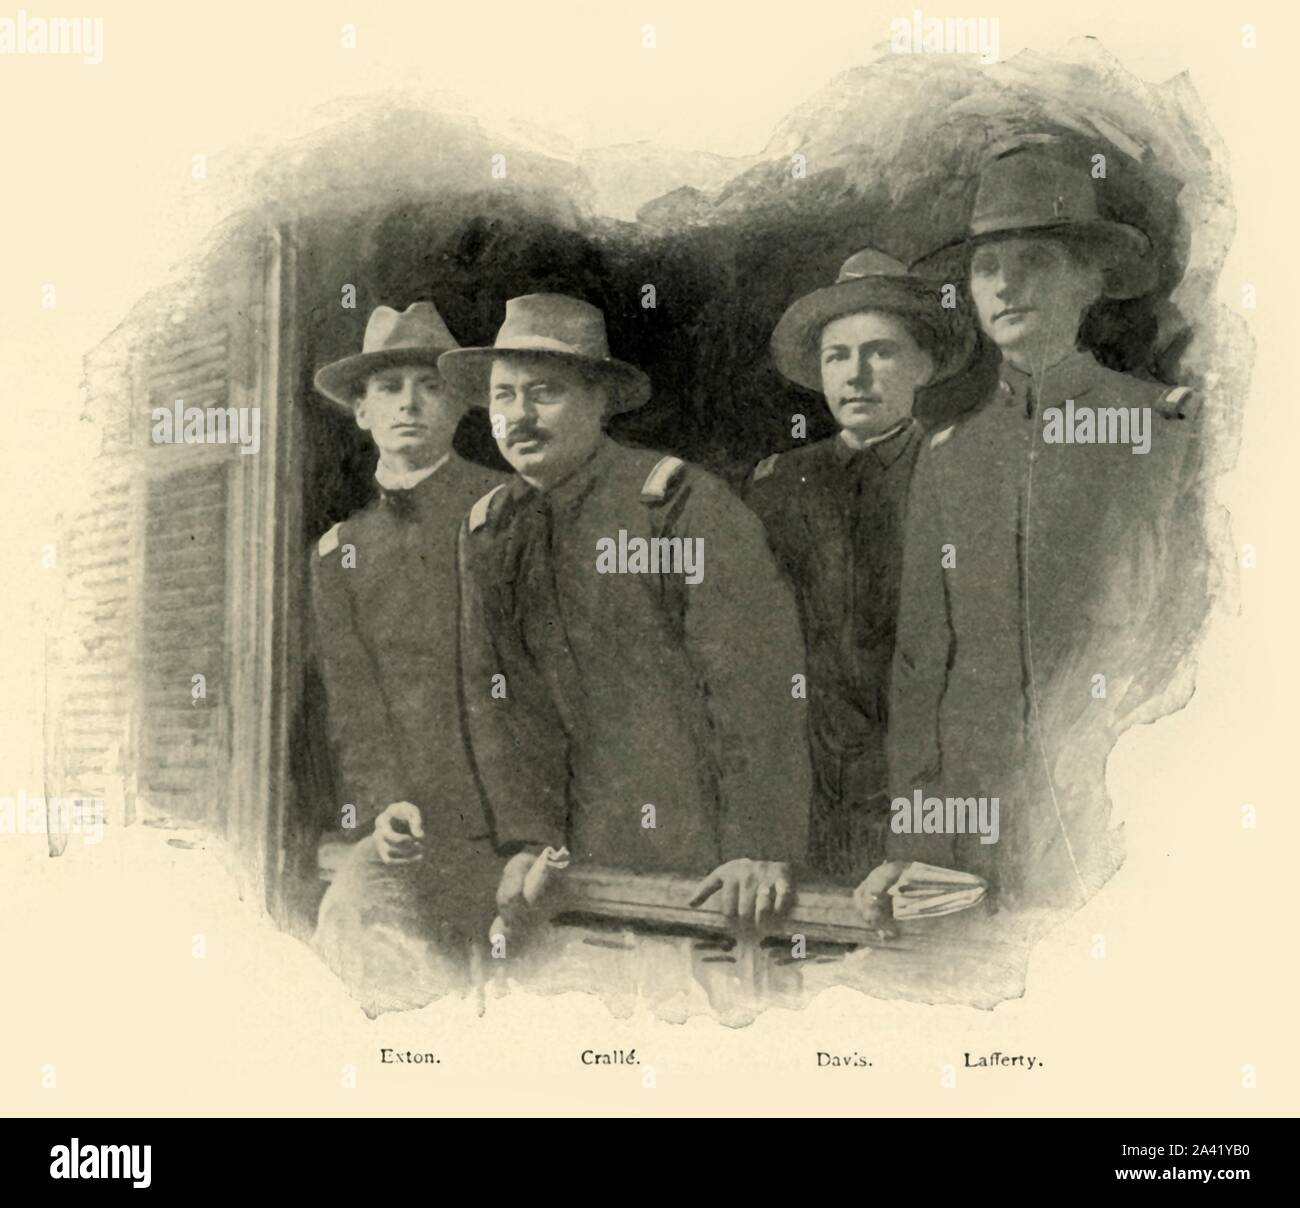 """'Graduates of '98', Spanish-American War, June 1898, (1899). US Army soldiers Lieutenant C. W. Exton, (20th Infantry), Crallé, Davis and Lafferty at Tampa Bay, Florida, USA, before leaving for Cuba: 'the last photograph taken of Lafferty and Davis...killed before San Juan...They had all four been graduated from West Point only a few brief weeks previously'. From """"The Little I saw of Cuba"""" by Burr McIntosh, with photographs by the author. (In 1898, American actor and journalist William Burr McIntosh went to Cuba to cover the Spanish-American War for """"Leslie's Weekly"""" as Stock Photo"""